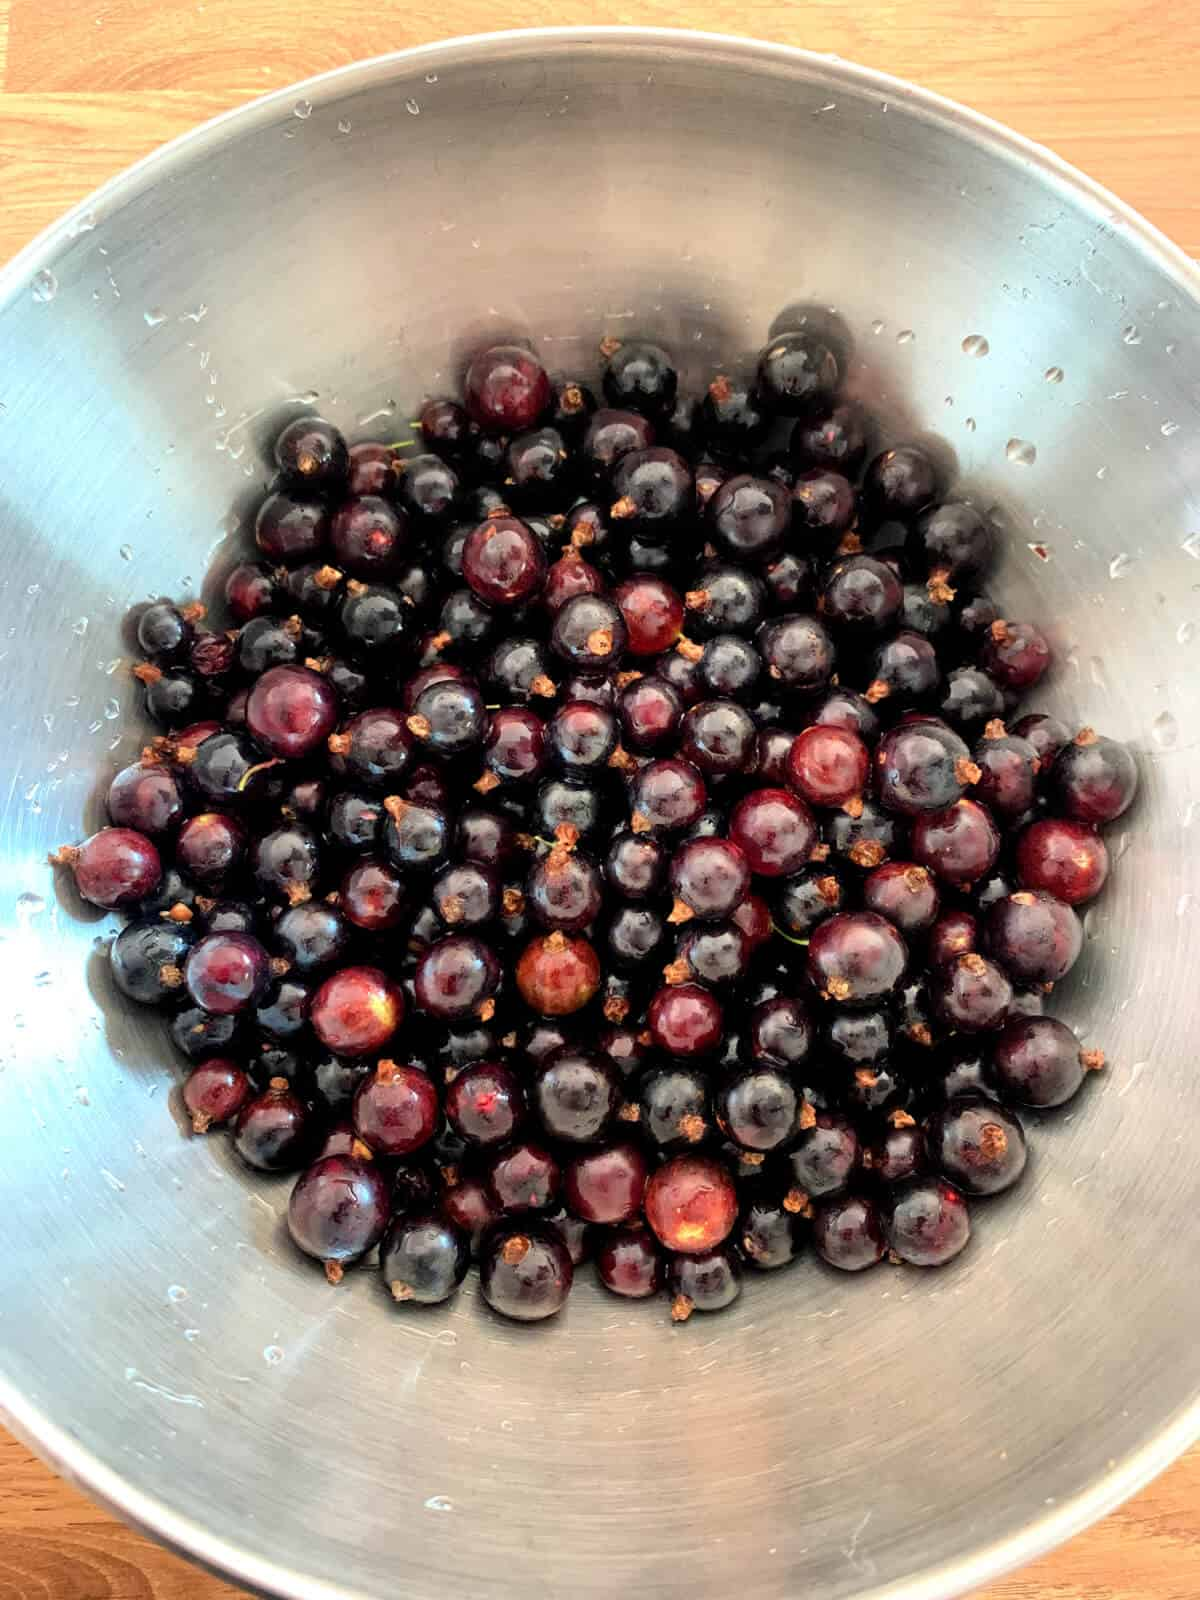 Washed blackcurrants in a metal bowl.